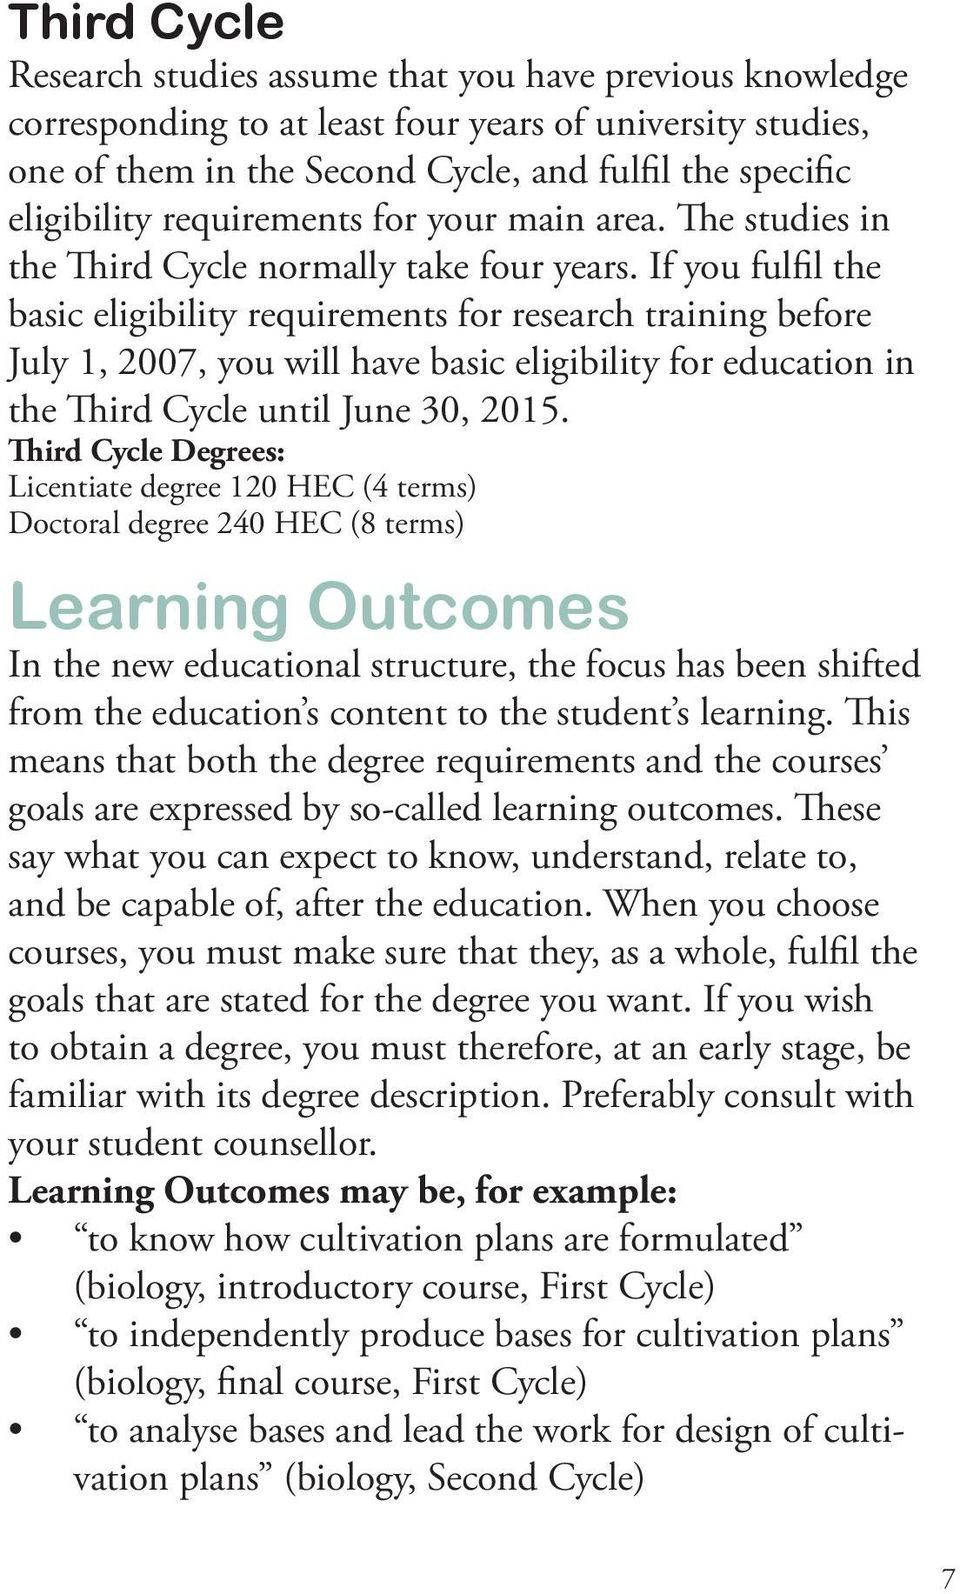 If you fulfil the basic eligibility requirements for research training before July 1, 2007, you will have basic eligibility for education in the Third Cycle until June 30, 2015.